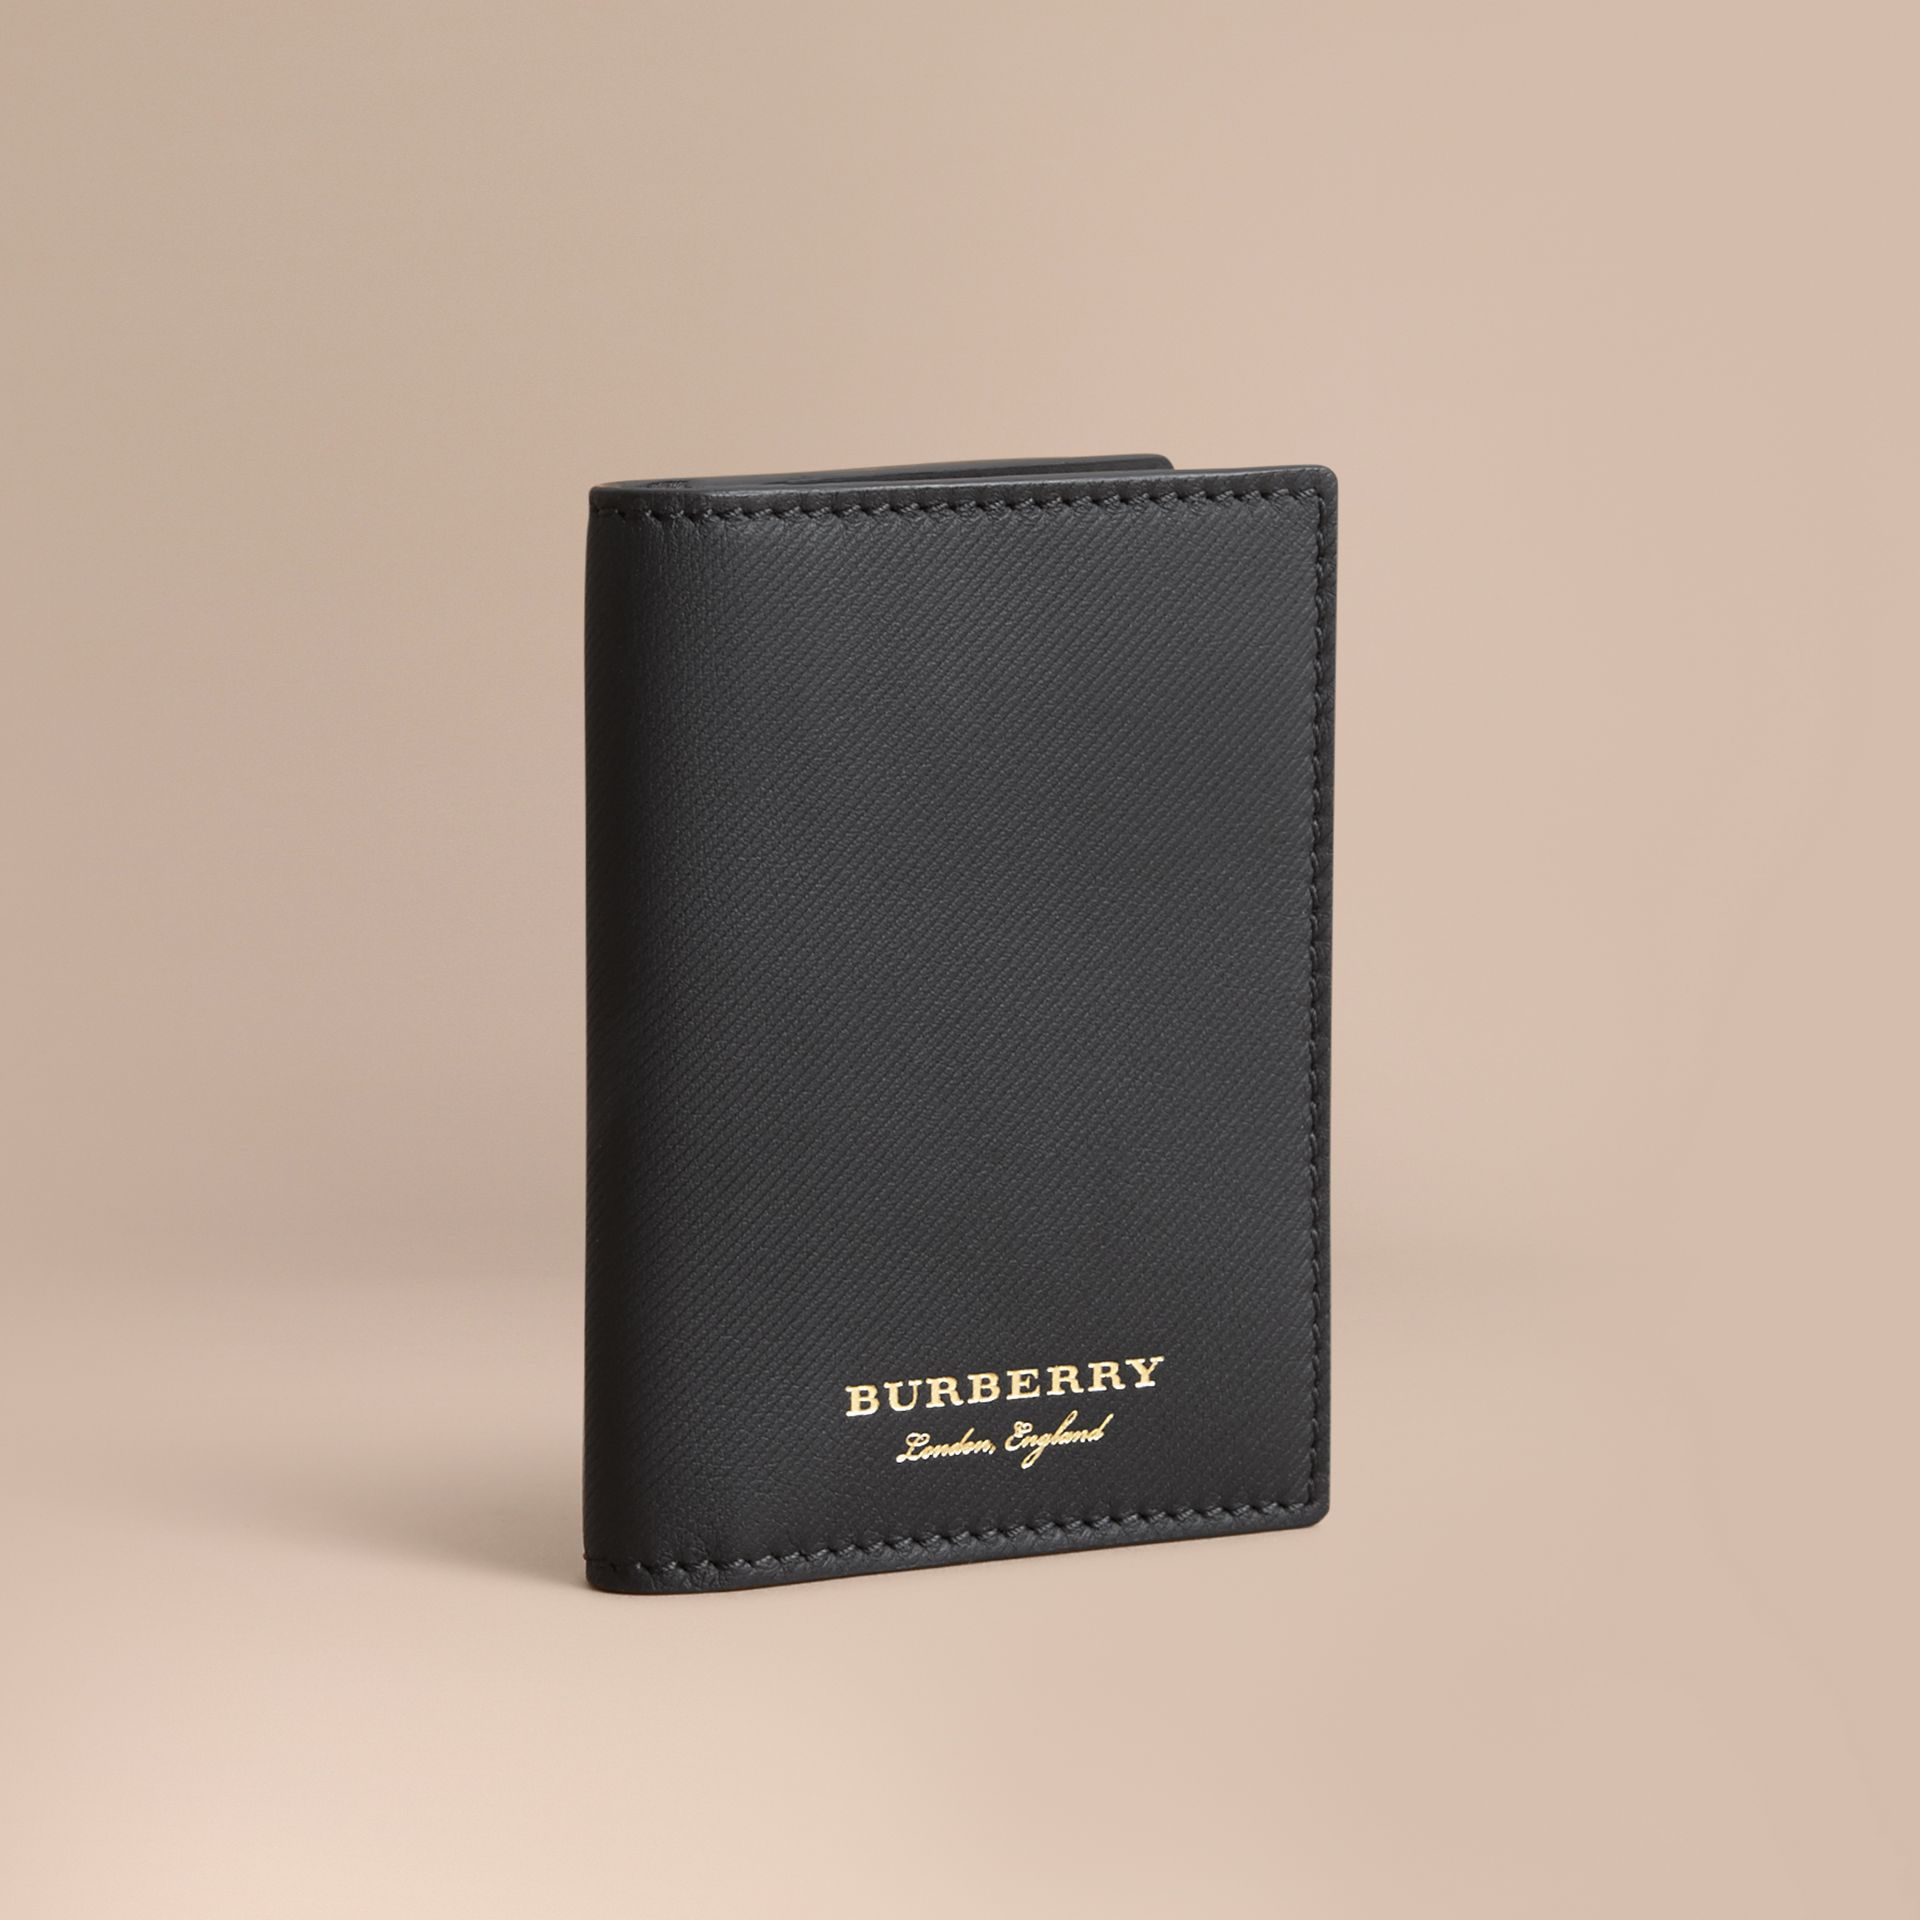 Trench Leather Folding Card Case in Black - Men | Burberry - gallery image 1